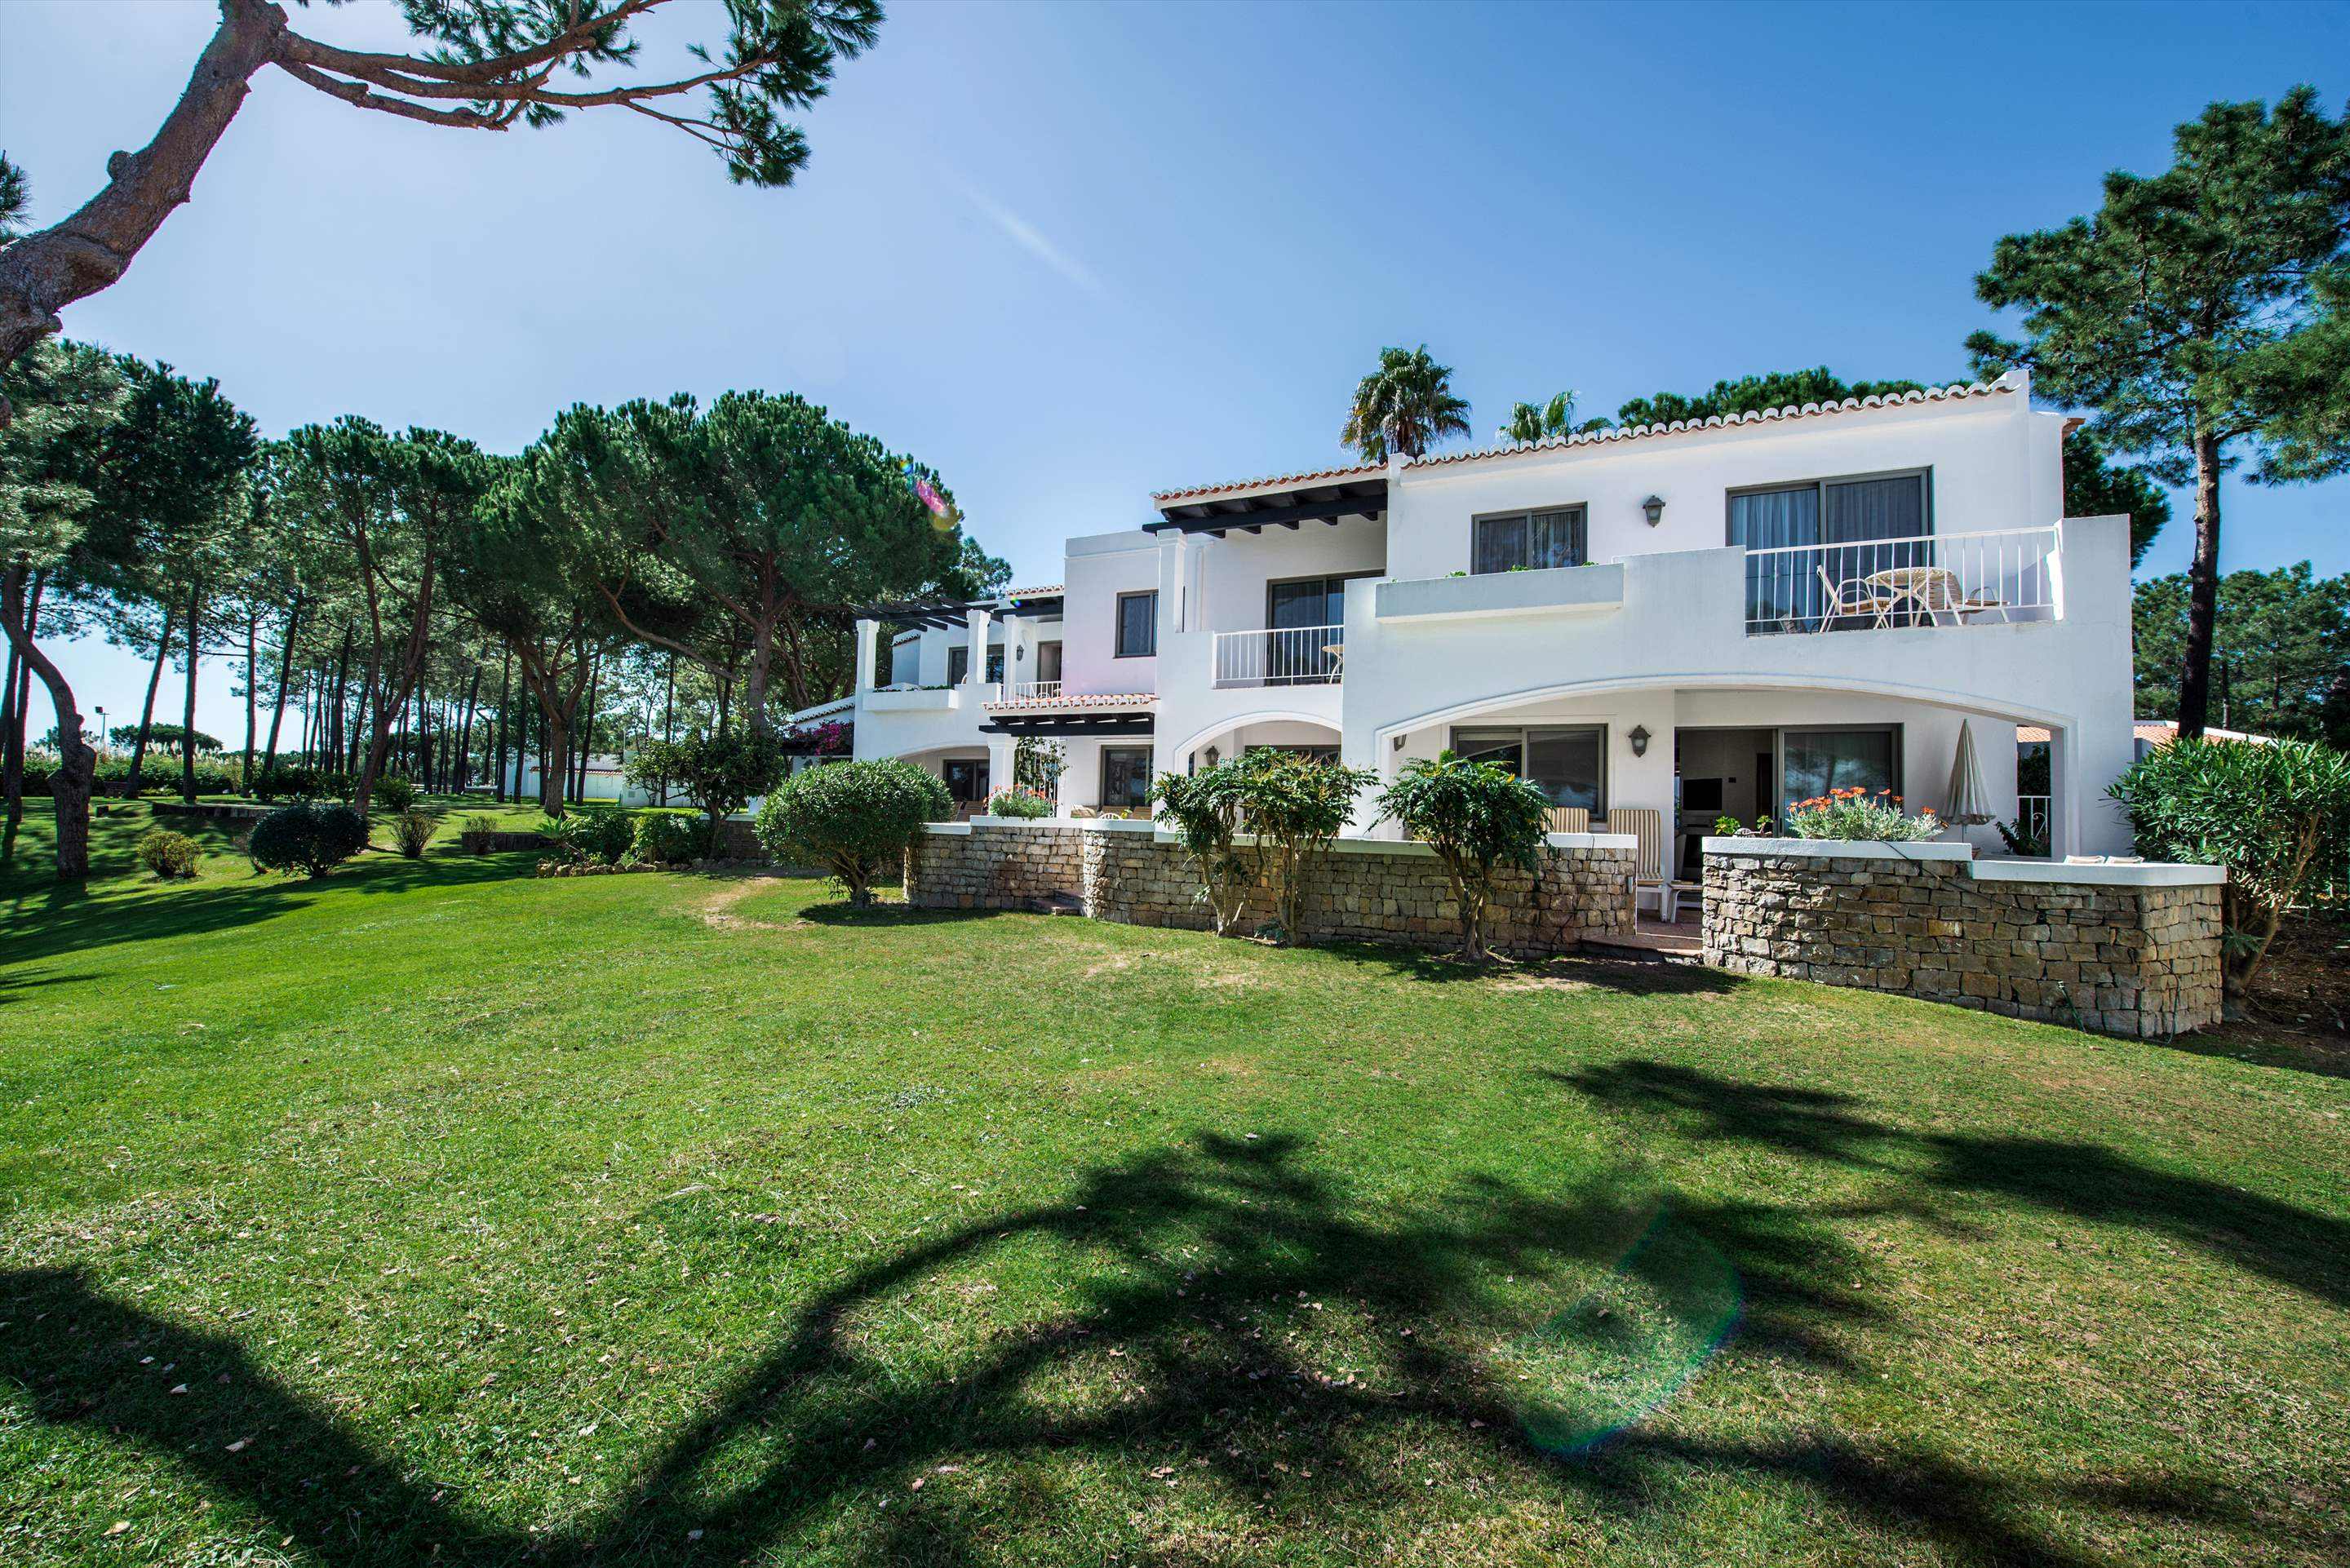 Four Seasons Country Club 1 bed, Superior - Sunday Arrival, 1 bedroom apartment in Four Seasons Country Club, Algarve Photo #1